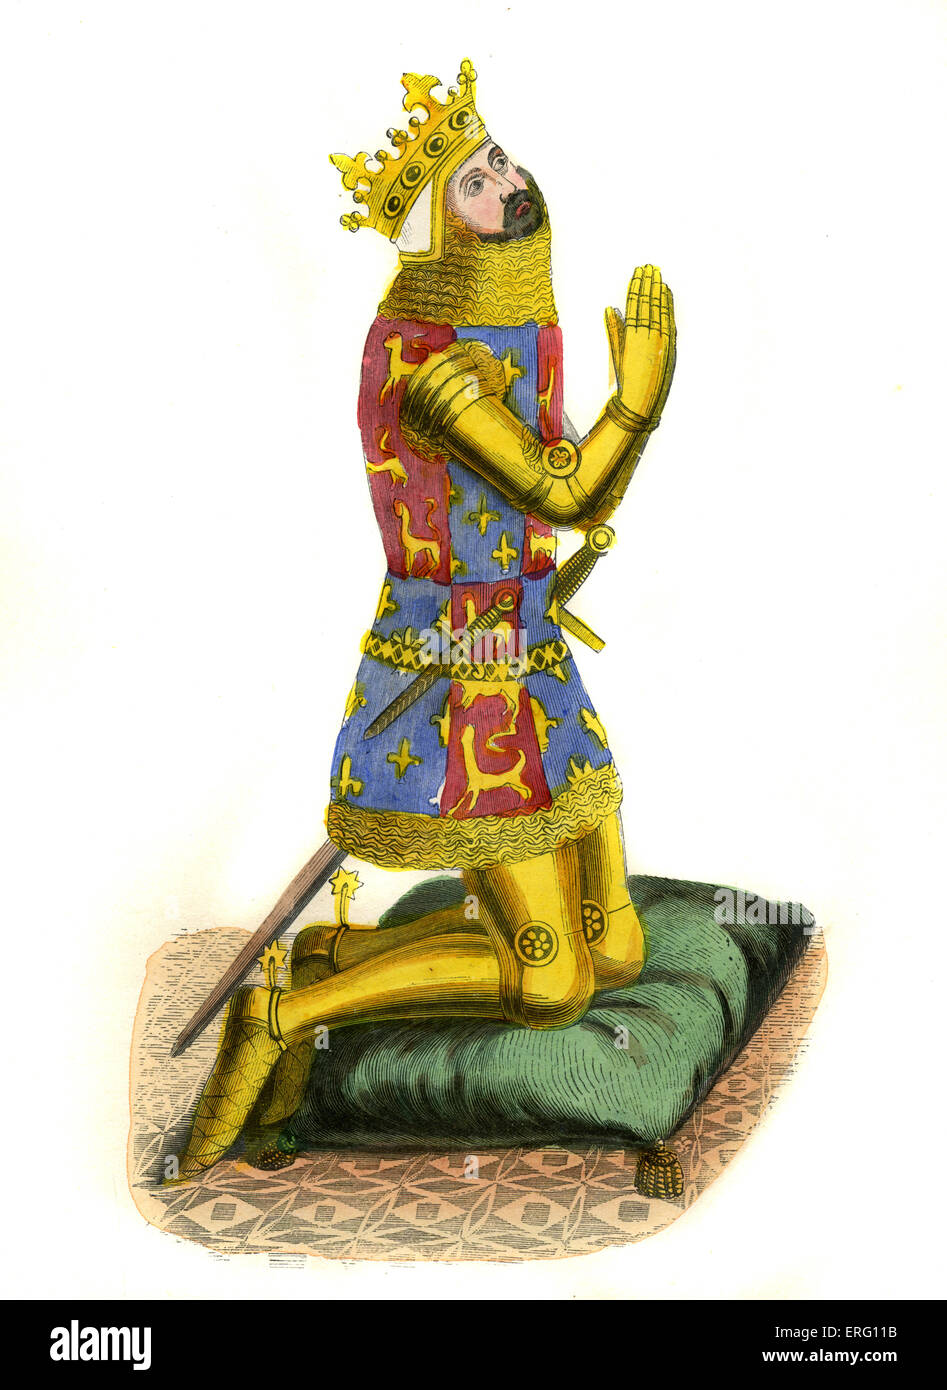 Edward III, King of England. His reign saw rise of England as efficiencet military power and   of development of - Stock Image